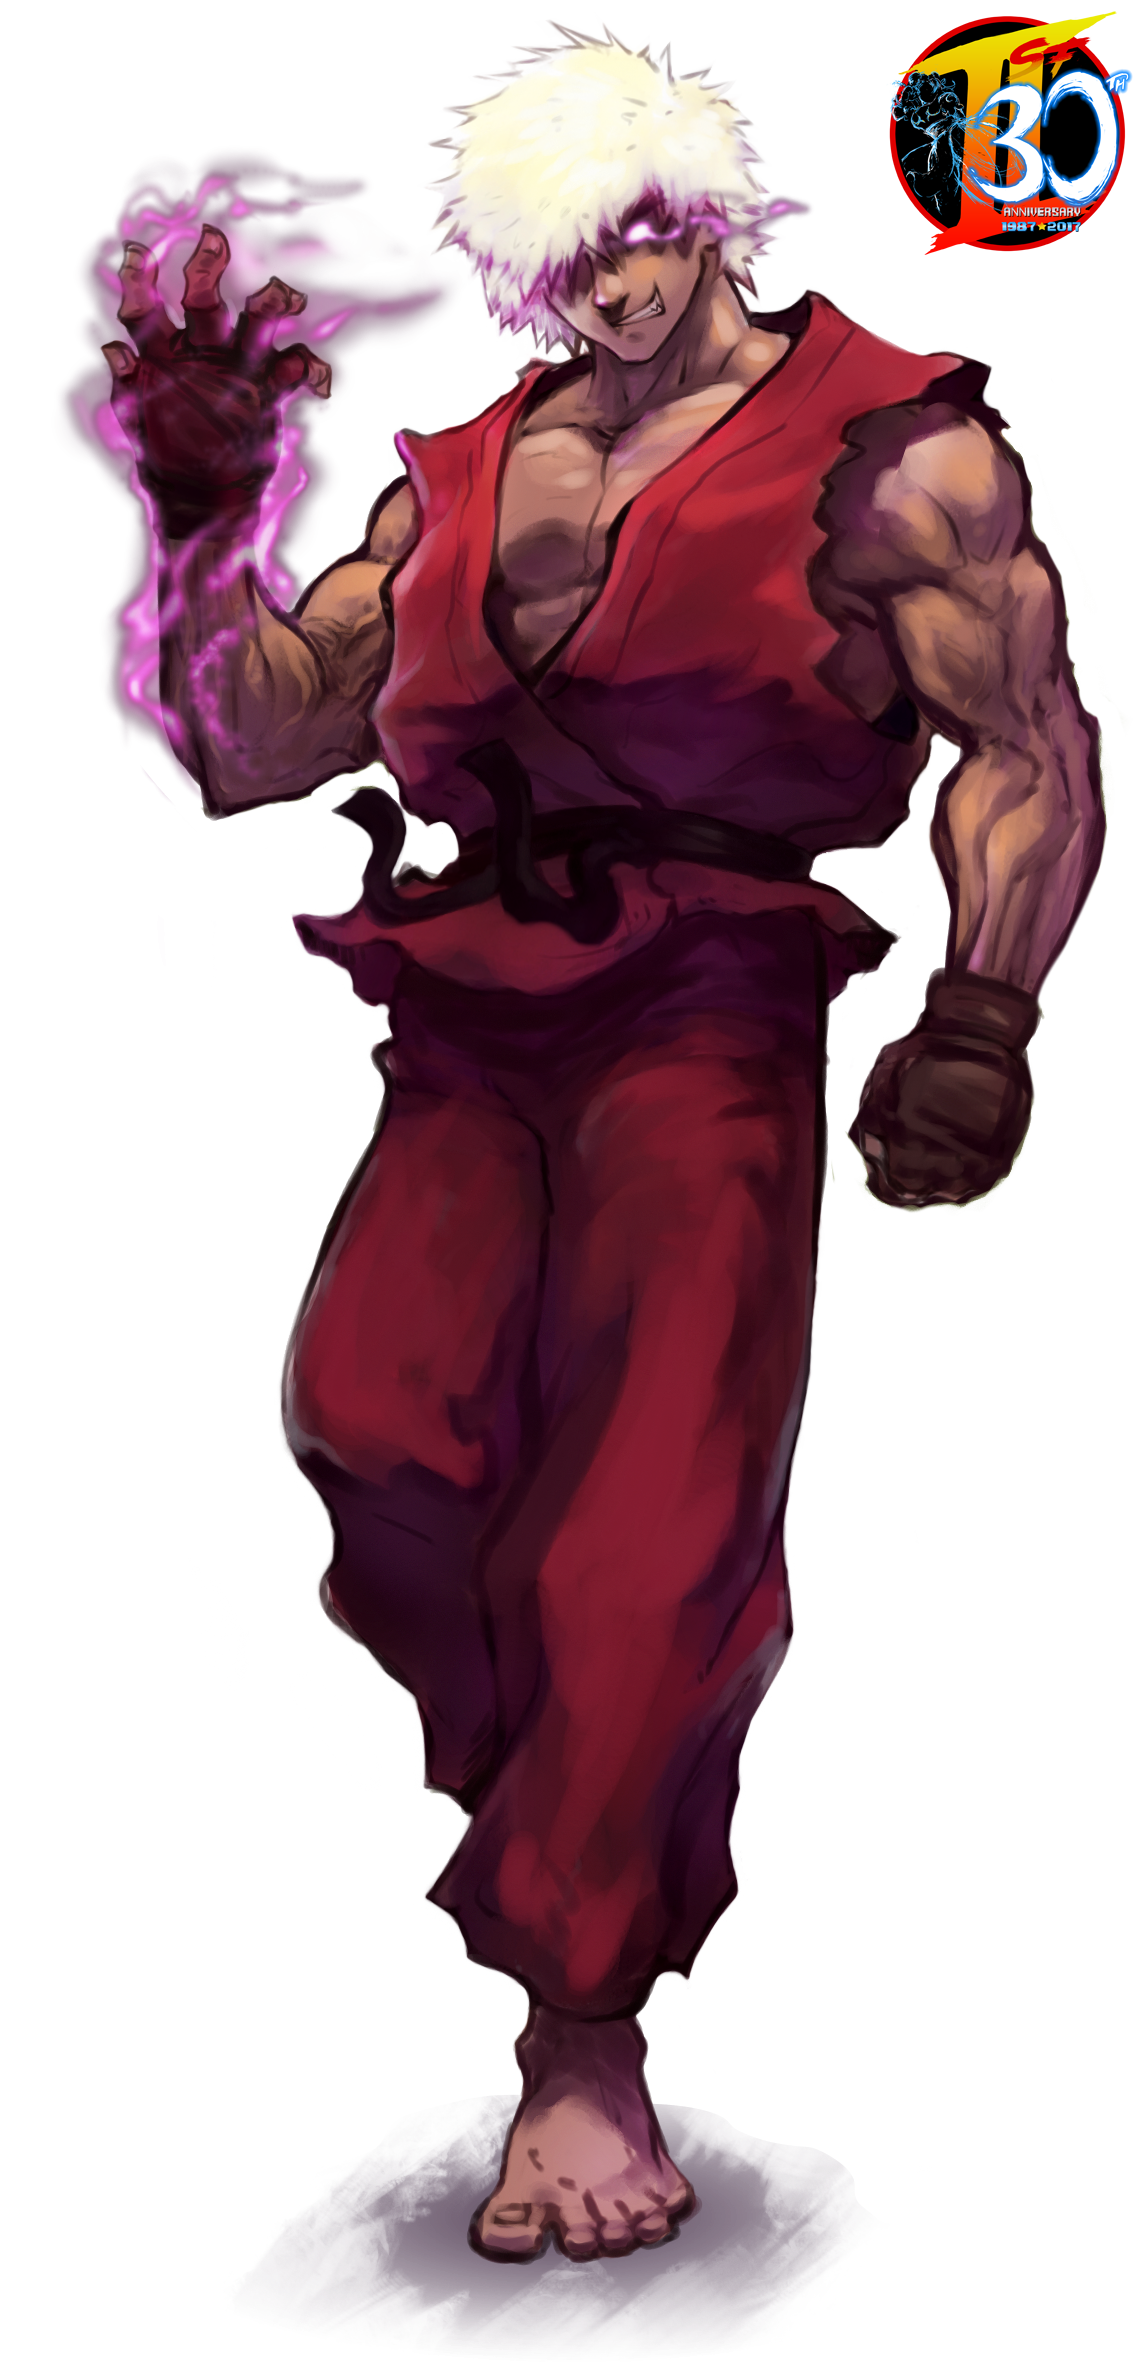 Ken street fighter png. Our th tribute violent